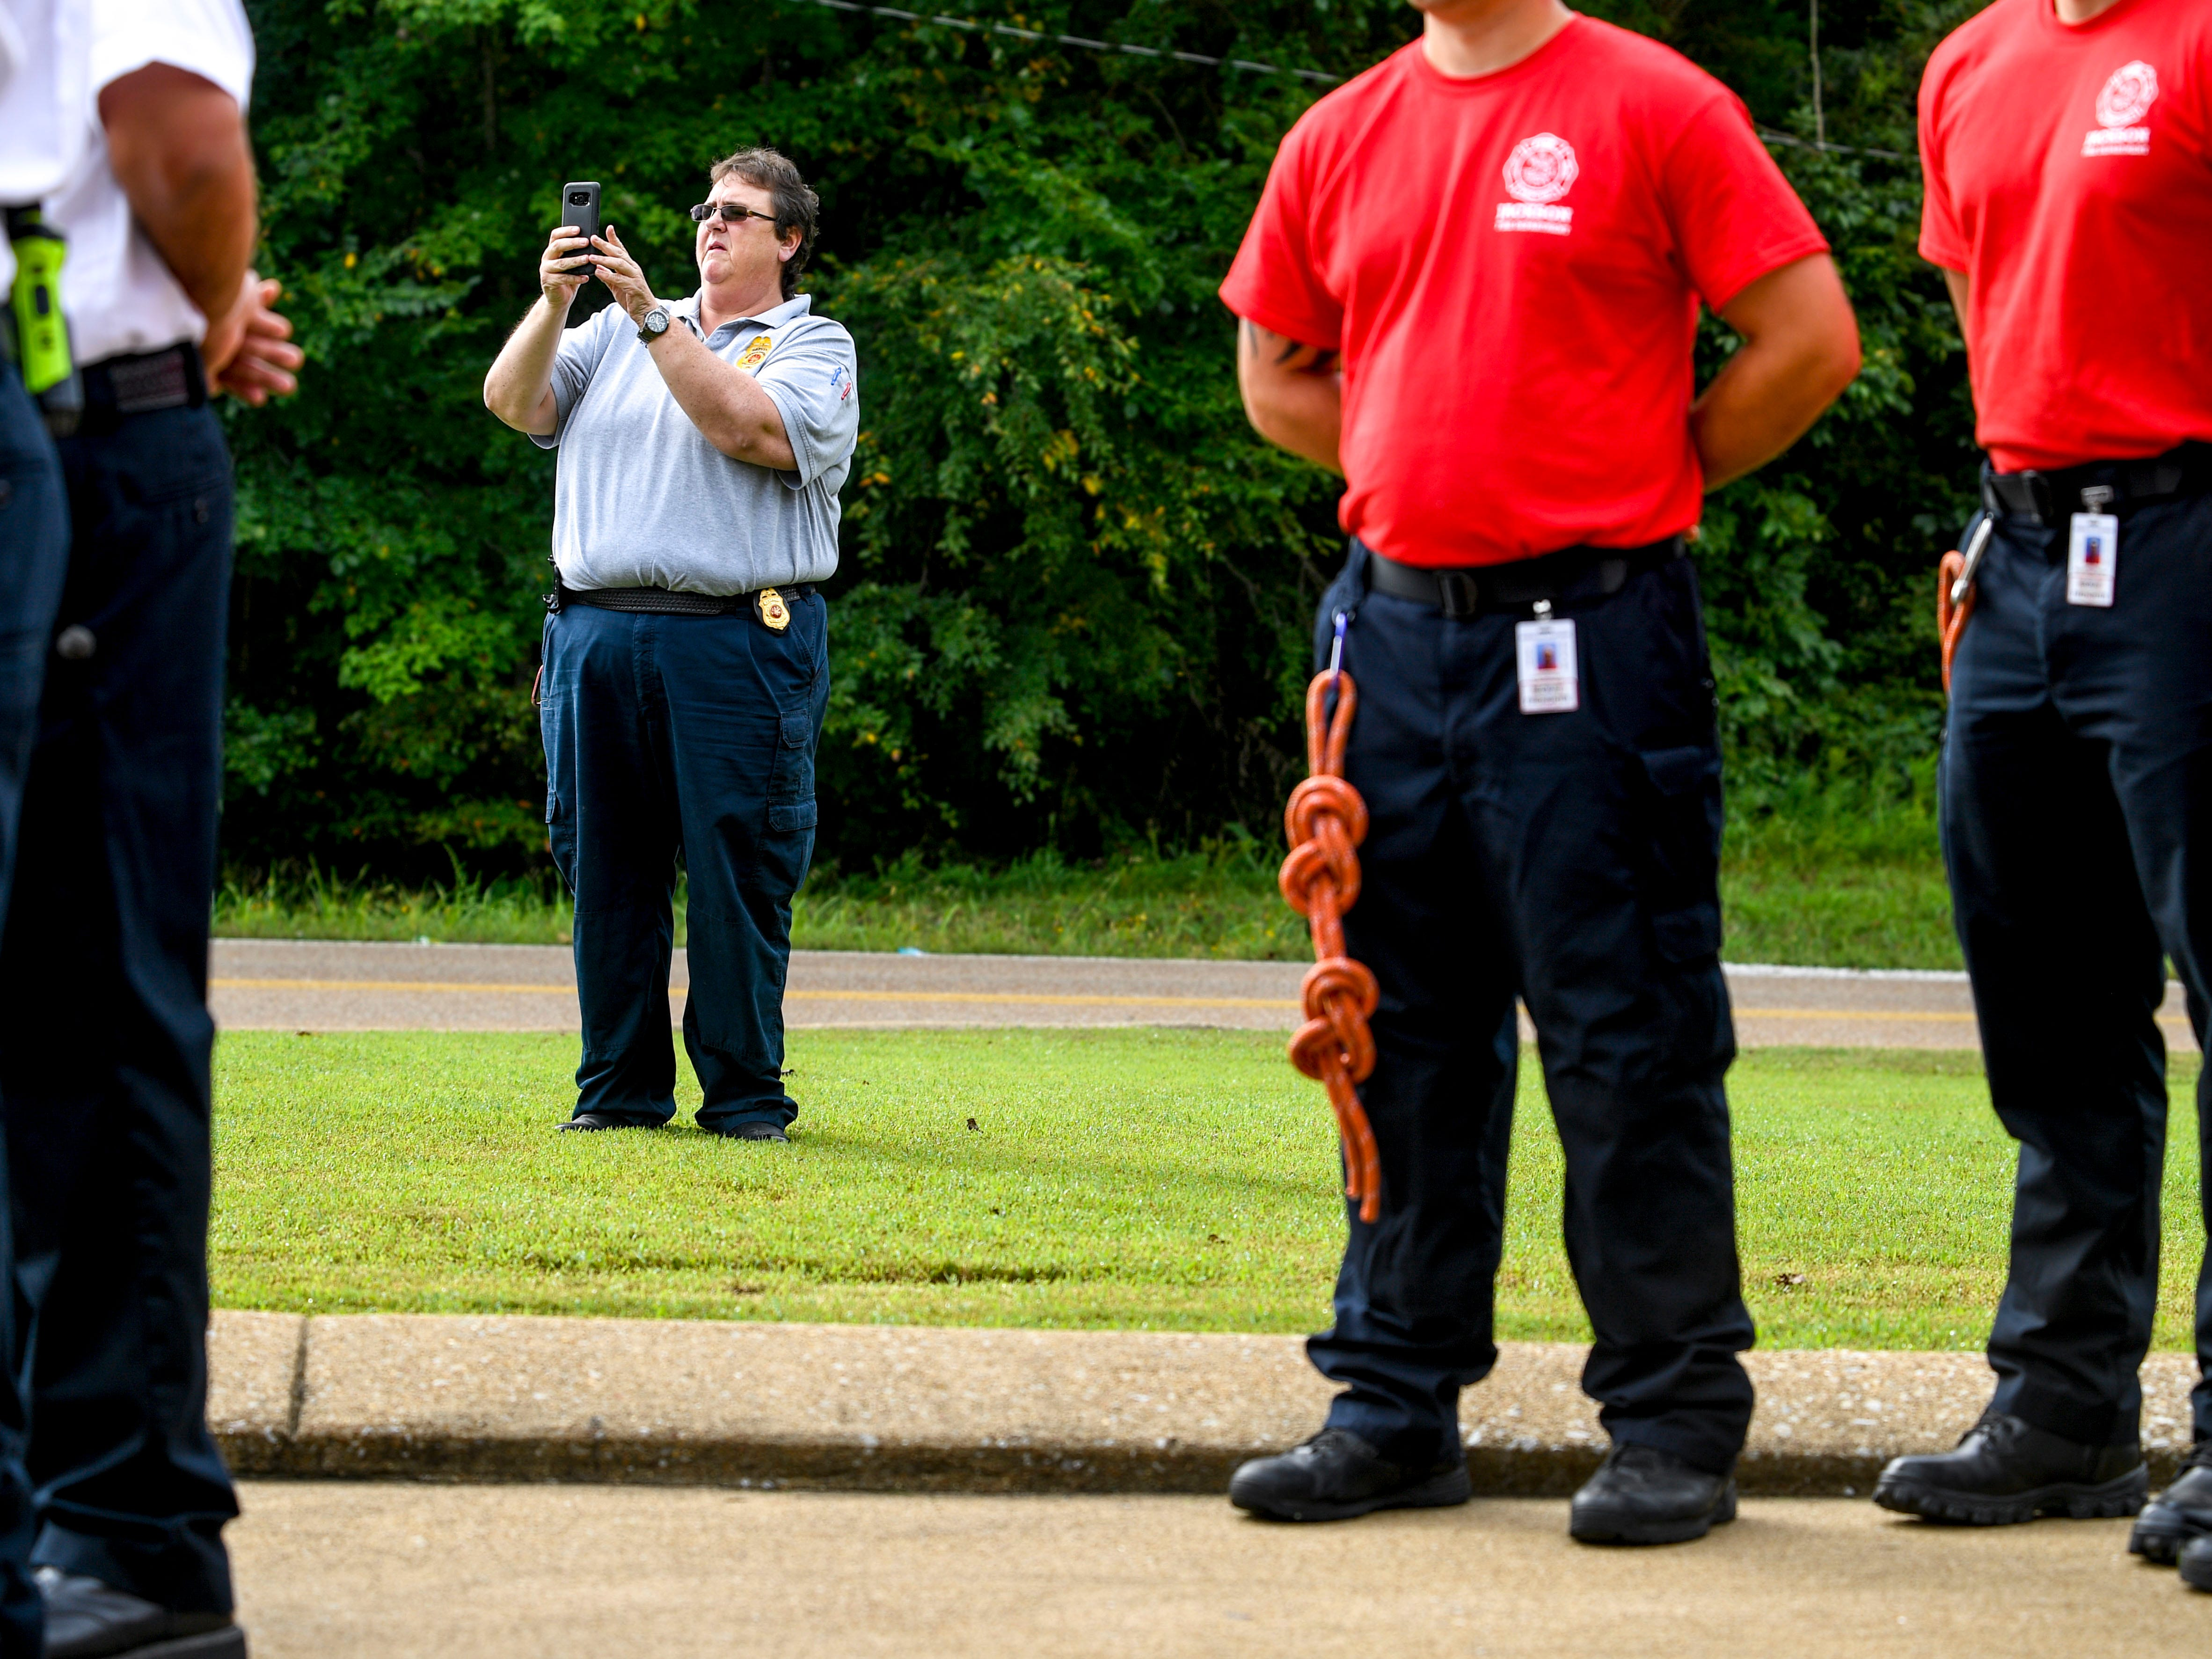 Tina Curtis, a fire investigator, takes photos of the event during a ceremony honoring the victims of the 9/11 attacks at Fire Station 3 in Jackson, Tenn., on Tuesday, Sept. 11, 2018.